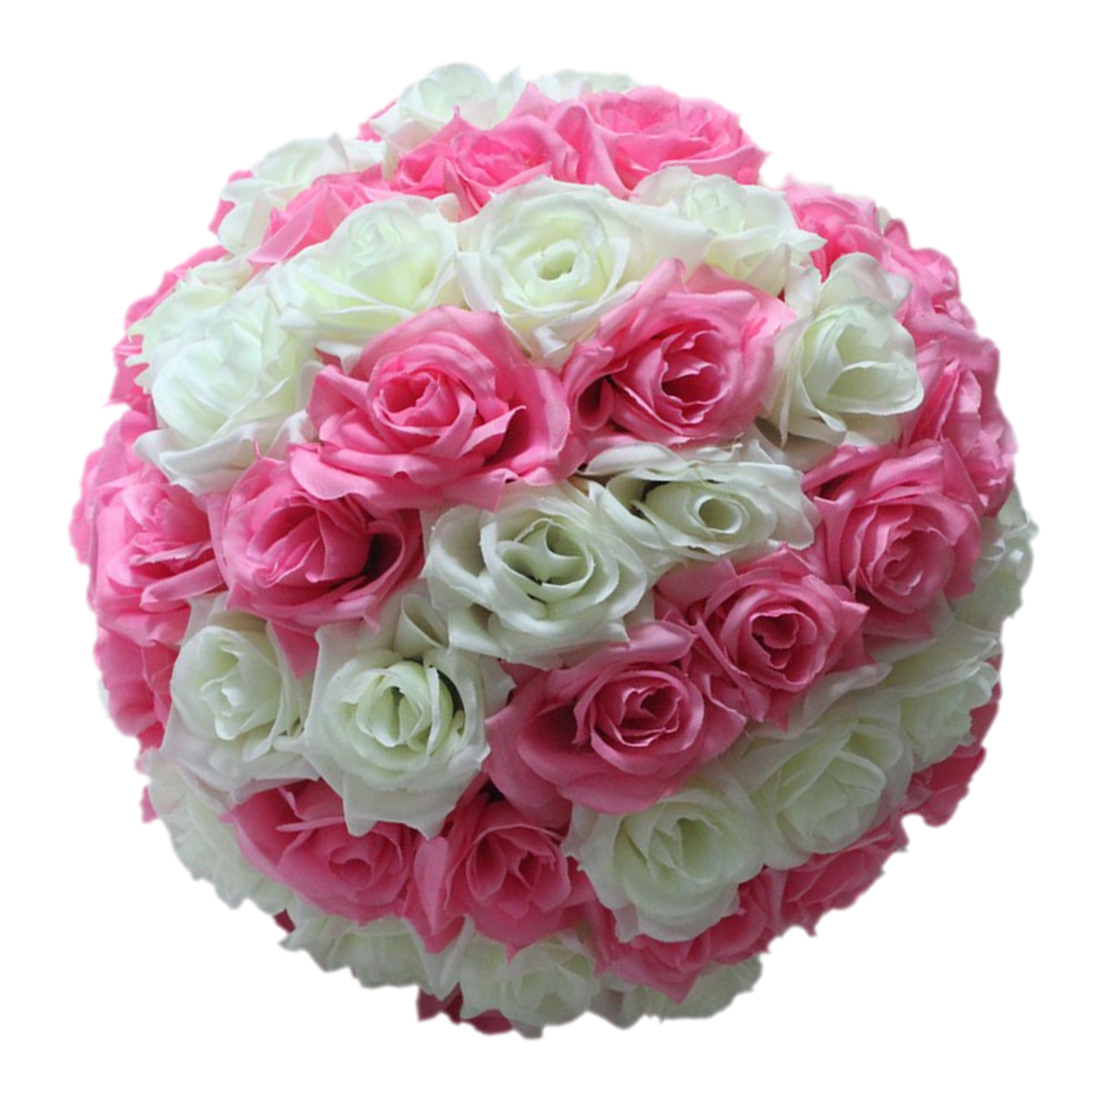 K9 8 wedding decorations artificial silk flower ball for Artificial flower for wedding decoration